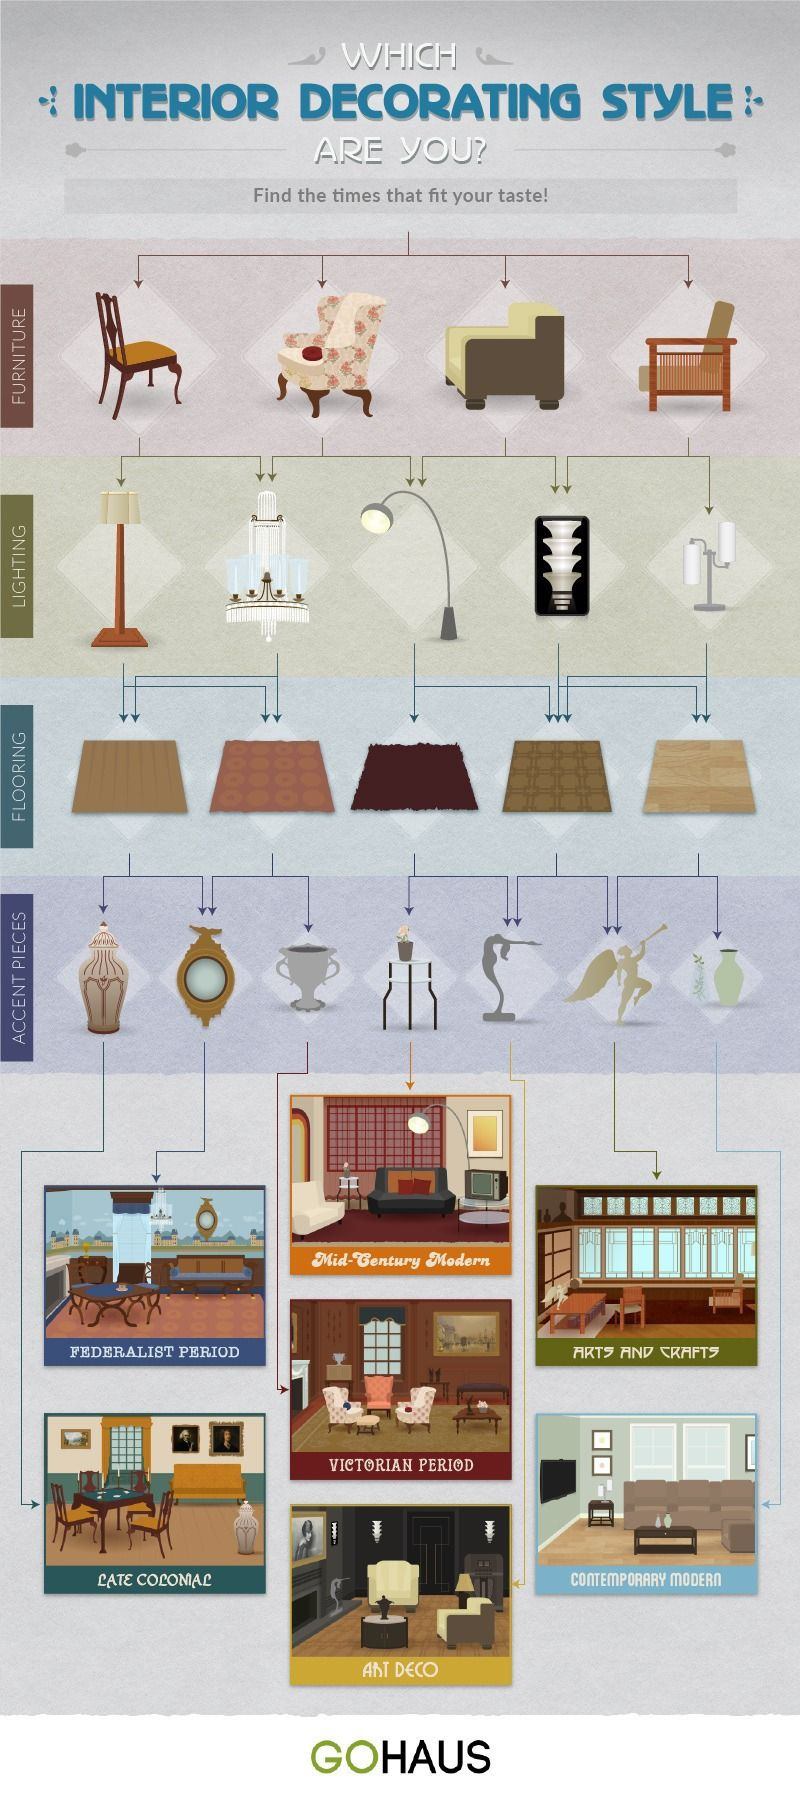 Discover Your Interior Design Style With This Simple Quiz